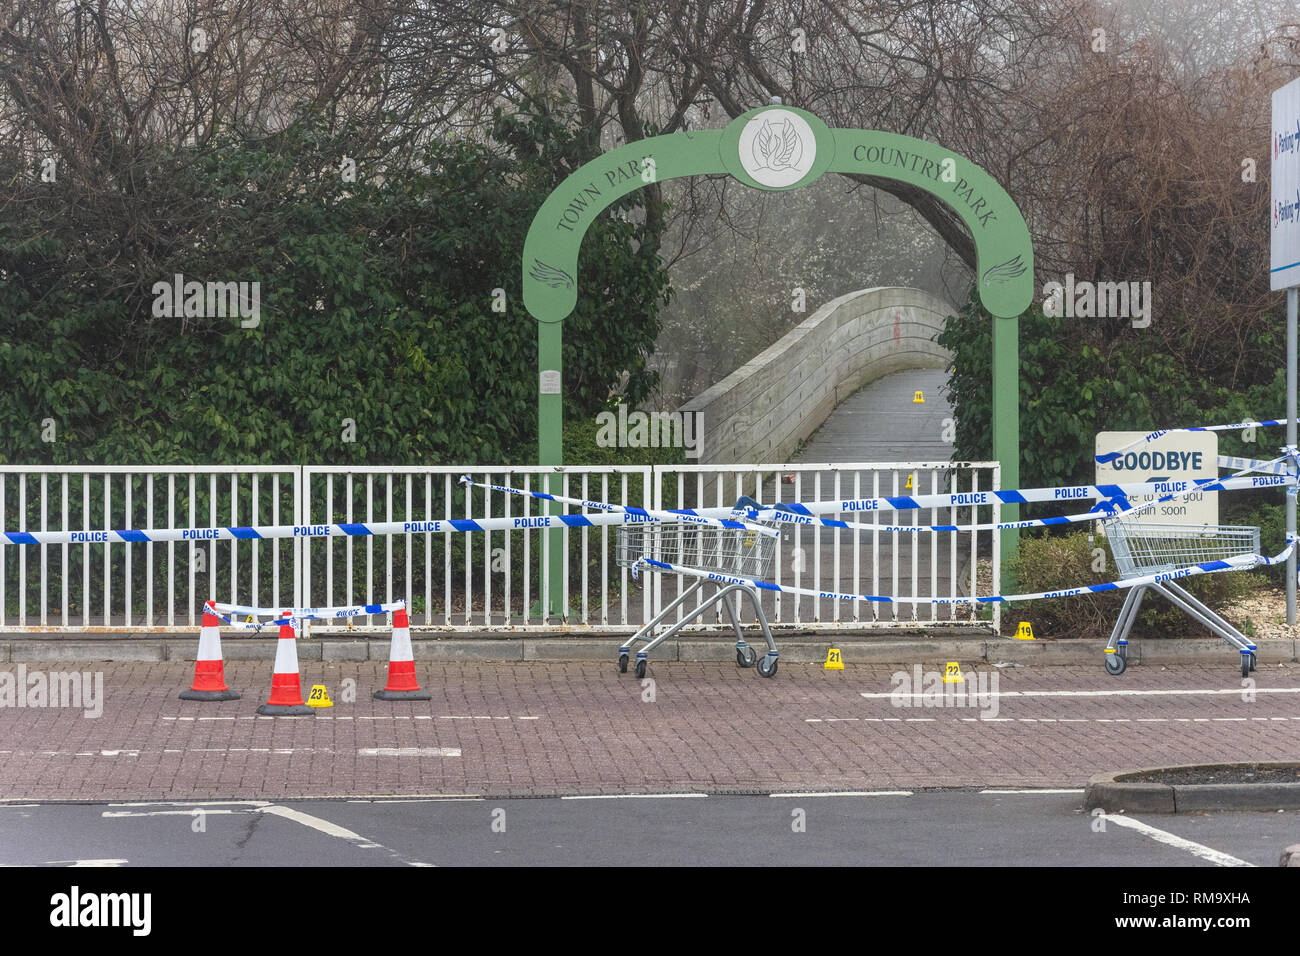 Trowbridge, Wiltshire, UK. 14th February 2019. Overnight there was a double stabbing near the Tesco Extra store. One victim rumoured to be critical. View of the Bridge into the Country park with crime scene markers leading over the bridge Credit: Starsphinx/Alamy Live News Stock Photo